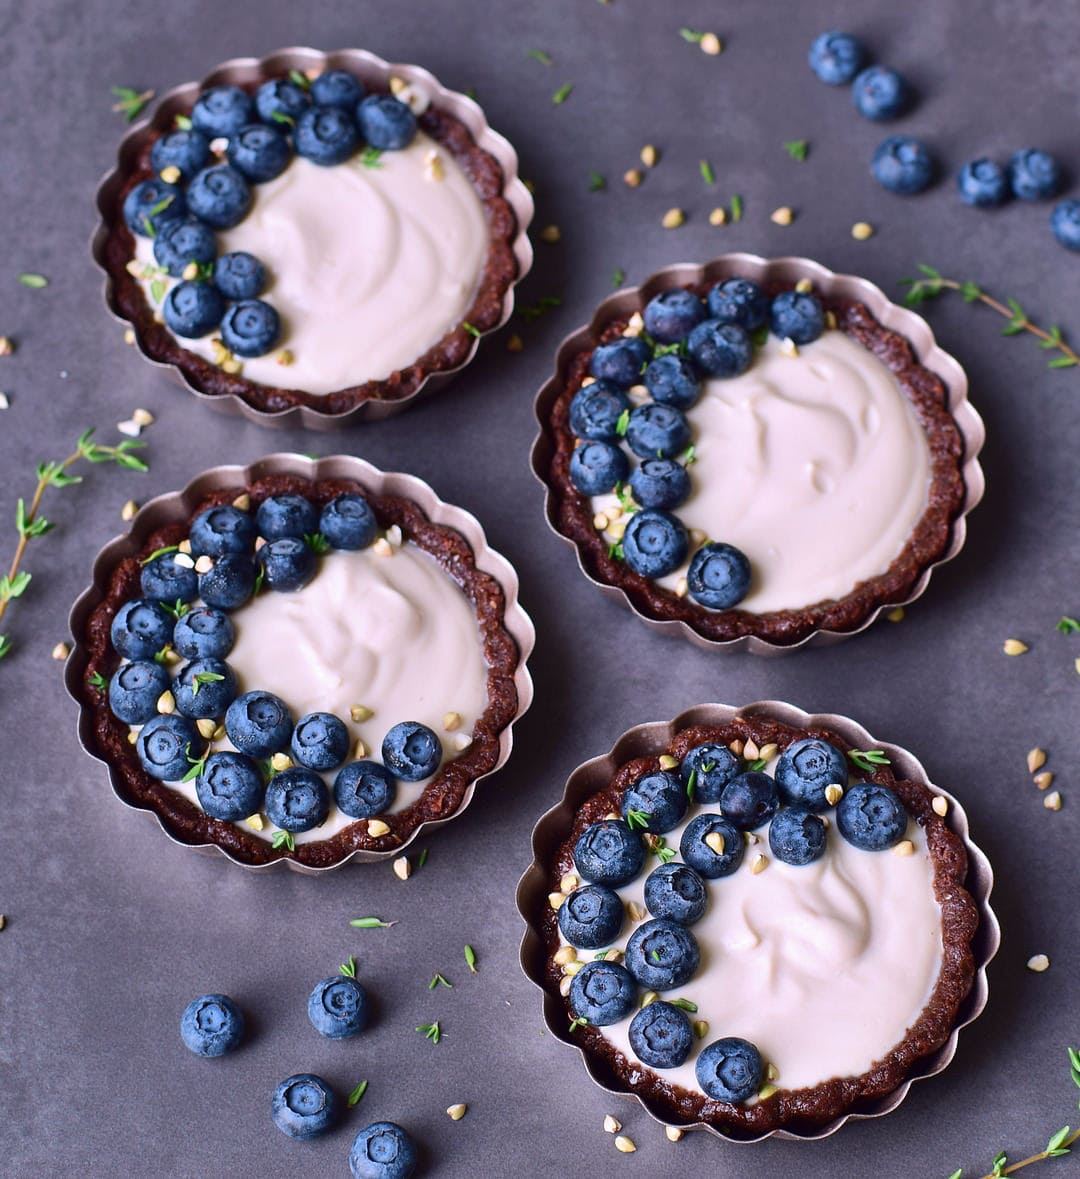 Vegan cheesecake tarts, which are easy to make, gluten-free, refined sugar free, nut-free, and 100% plant-based. The recipe requires no baking. Creamy and delicious dessert which is ready in no time